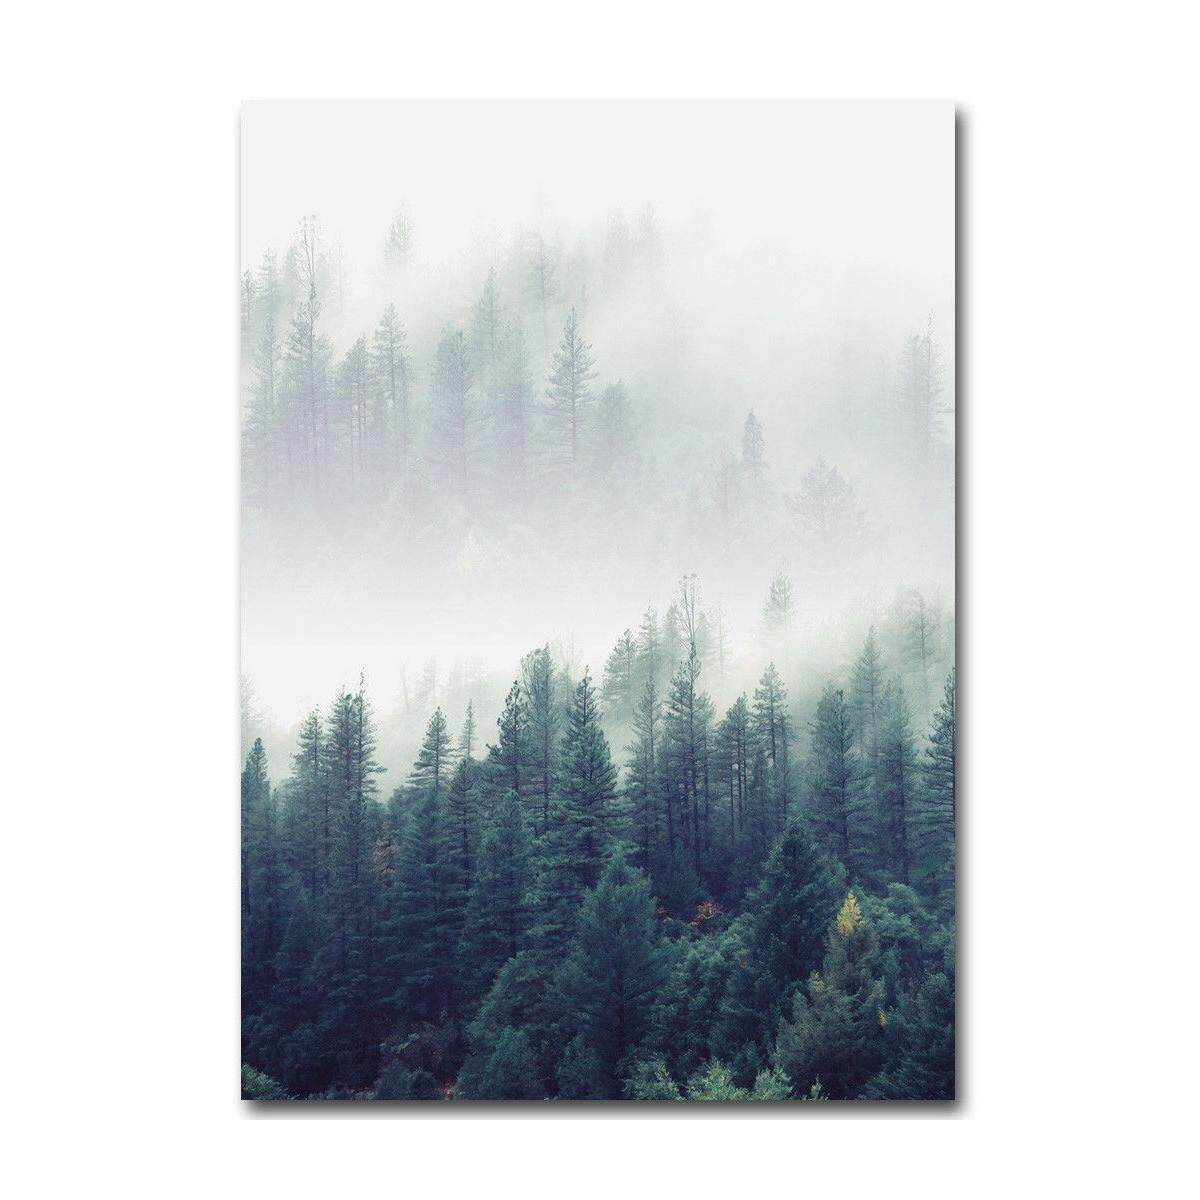 Nordic Style Forest Landscape Wall Art Canvas Poster Prints Home Decoration # 21*30cm